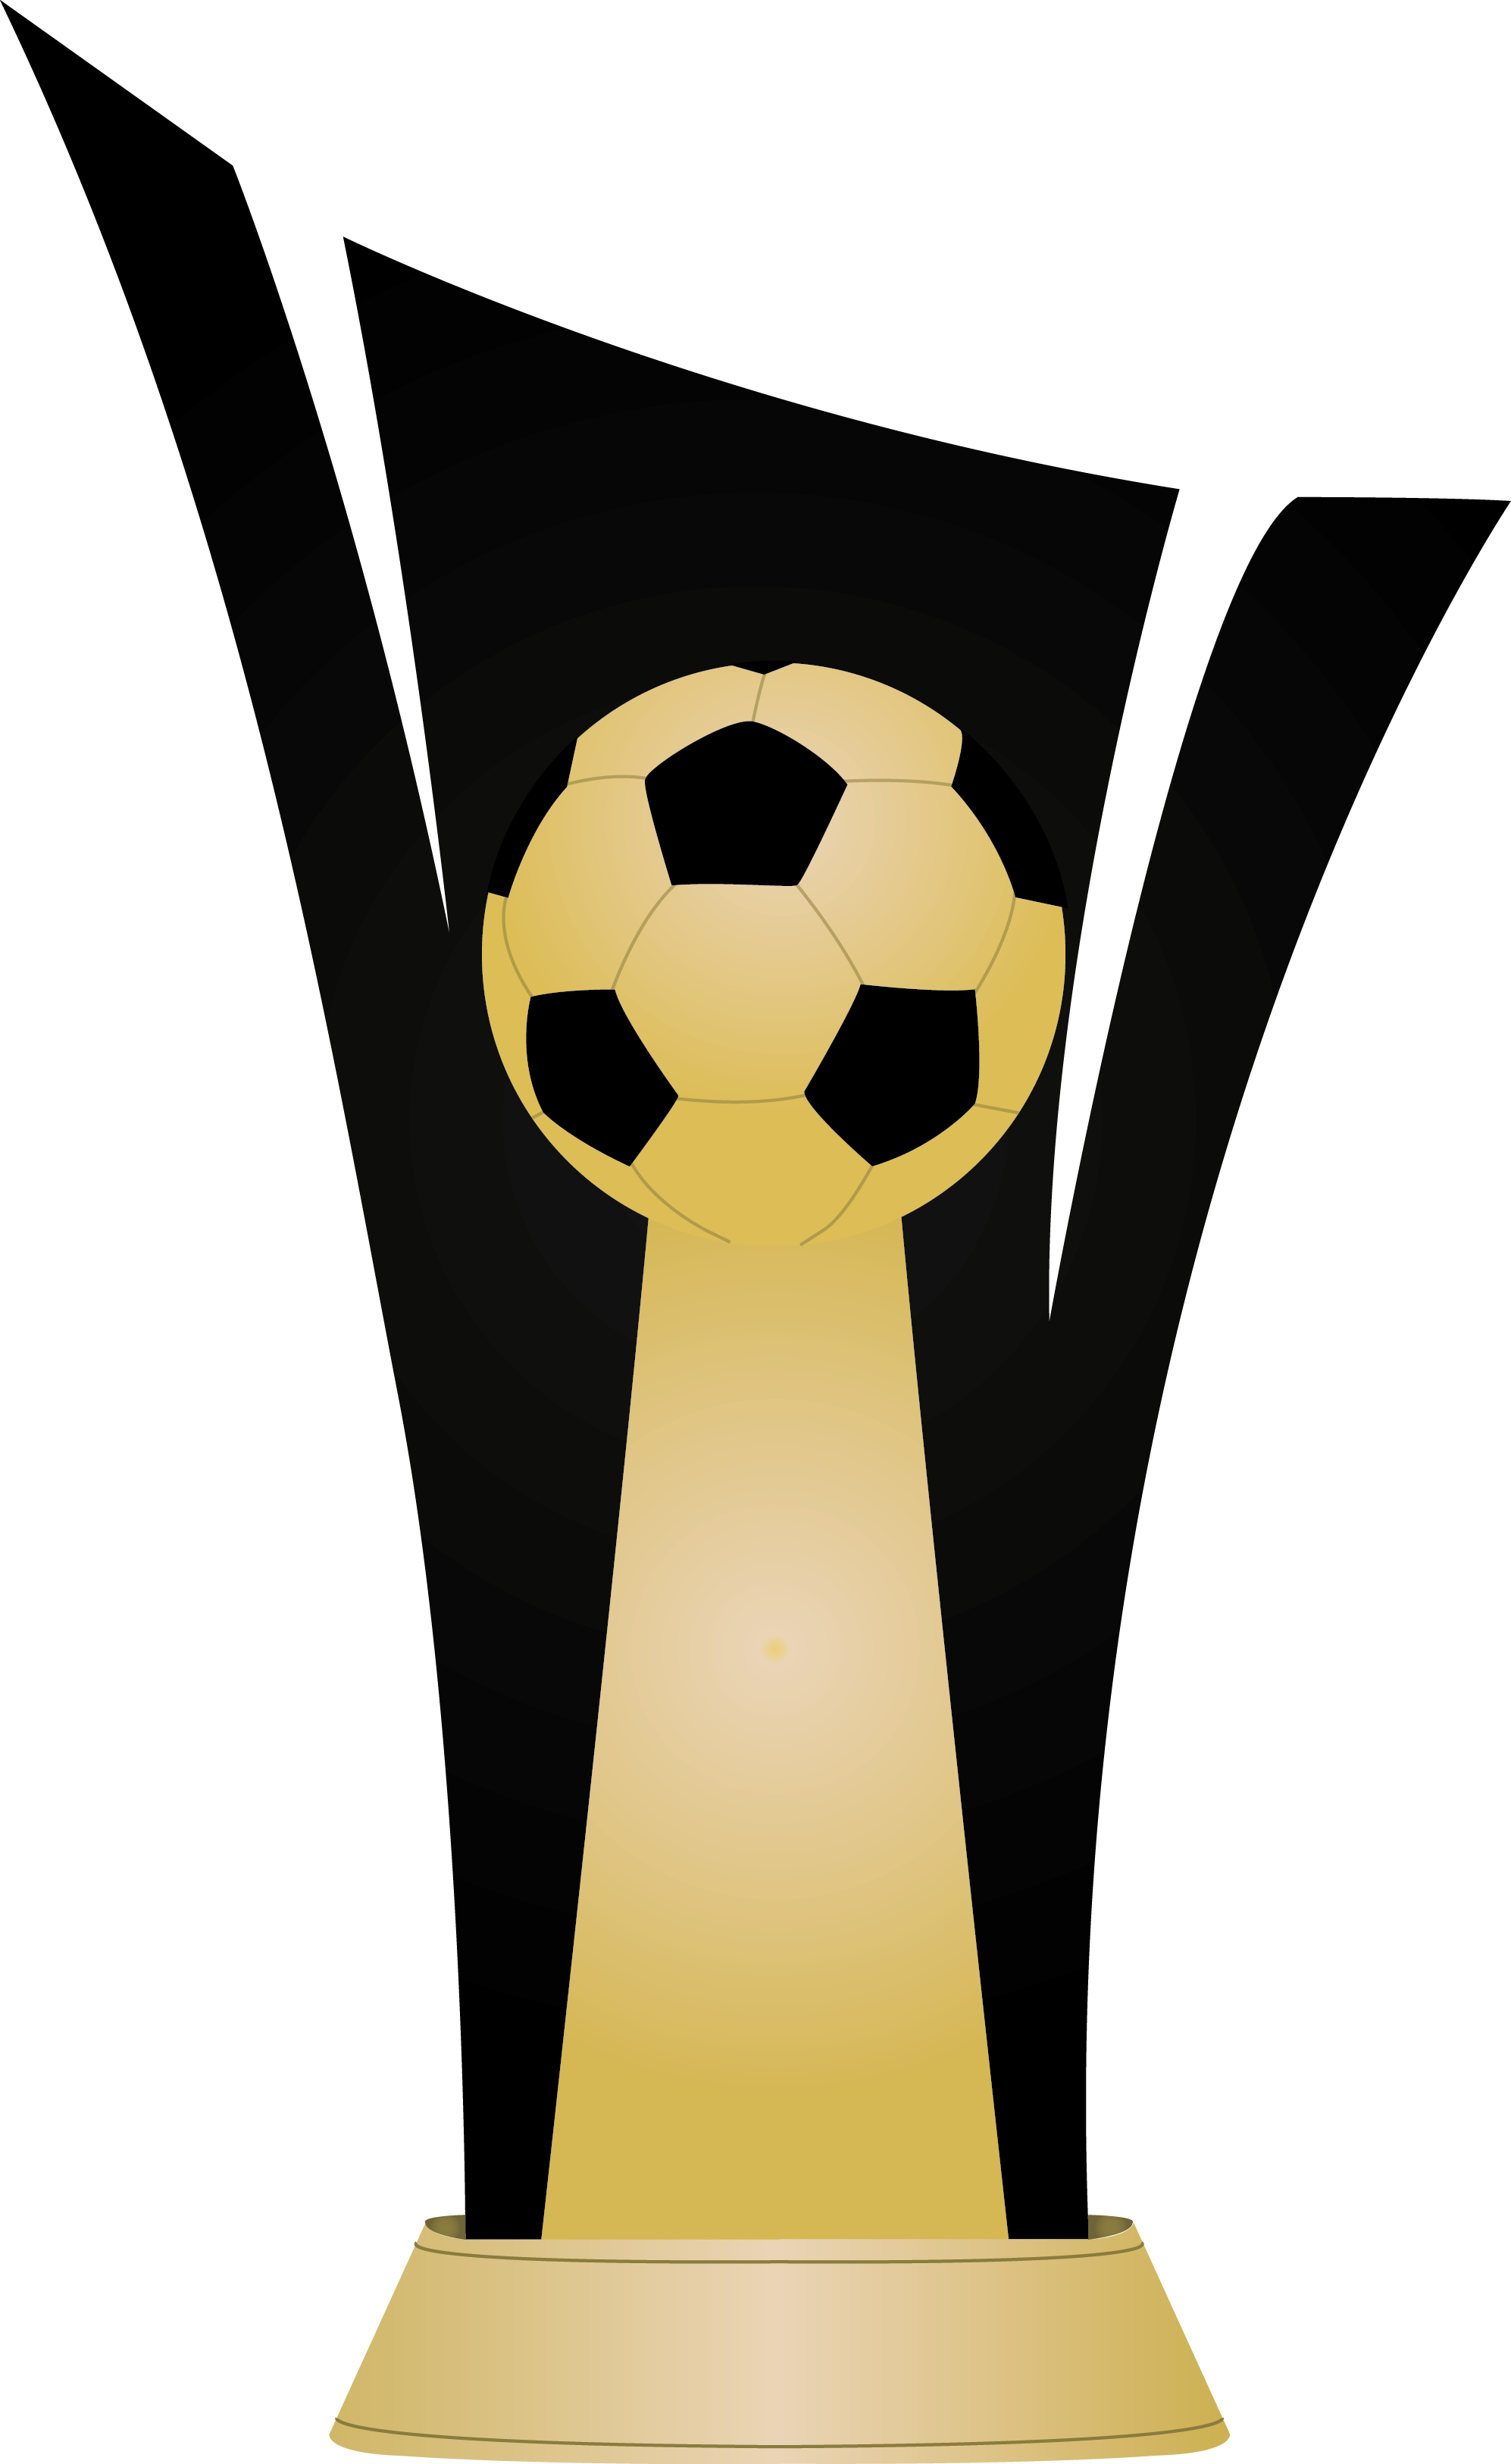 Ficheiro:CONCACAF Champions League Trophy Icon.png ...